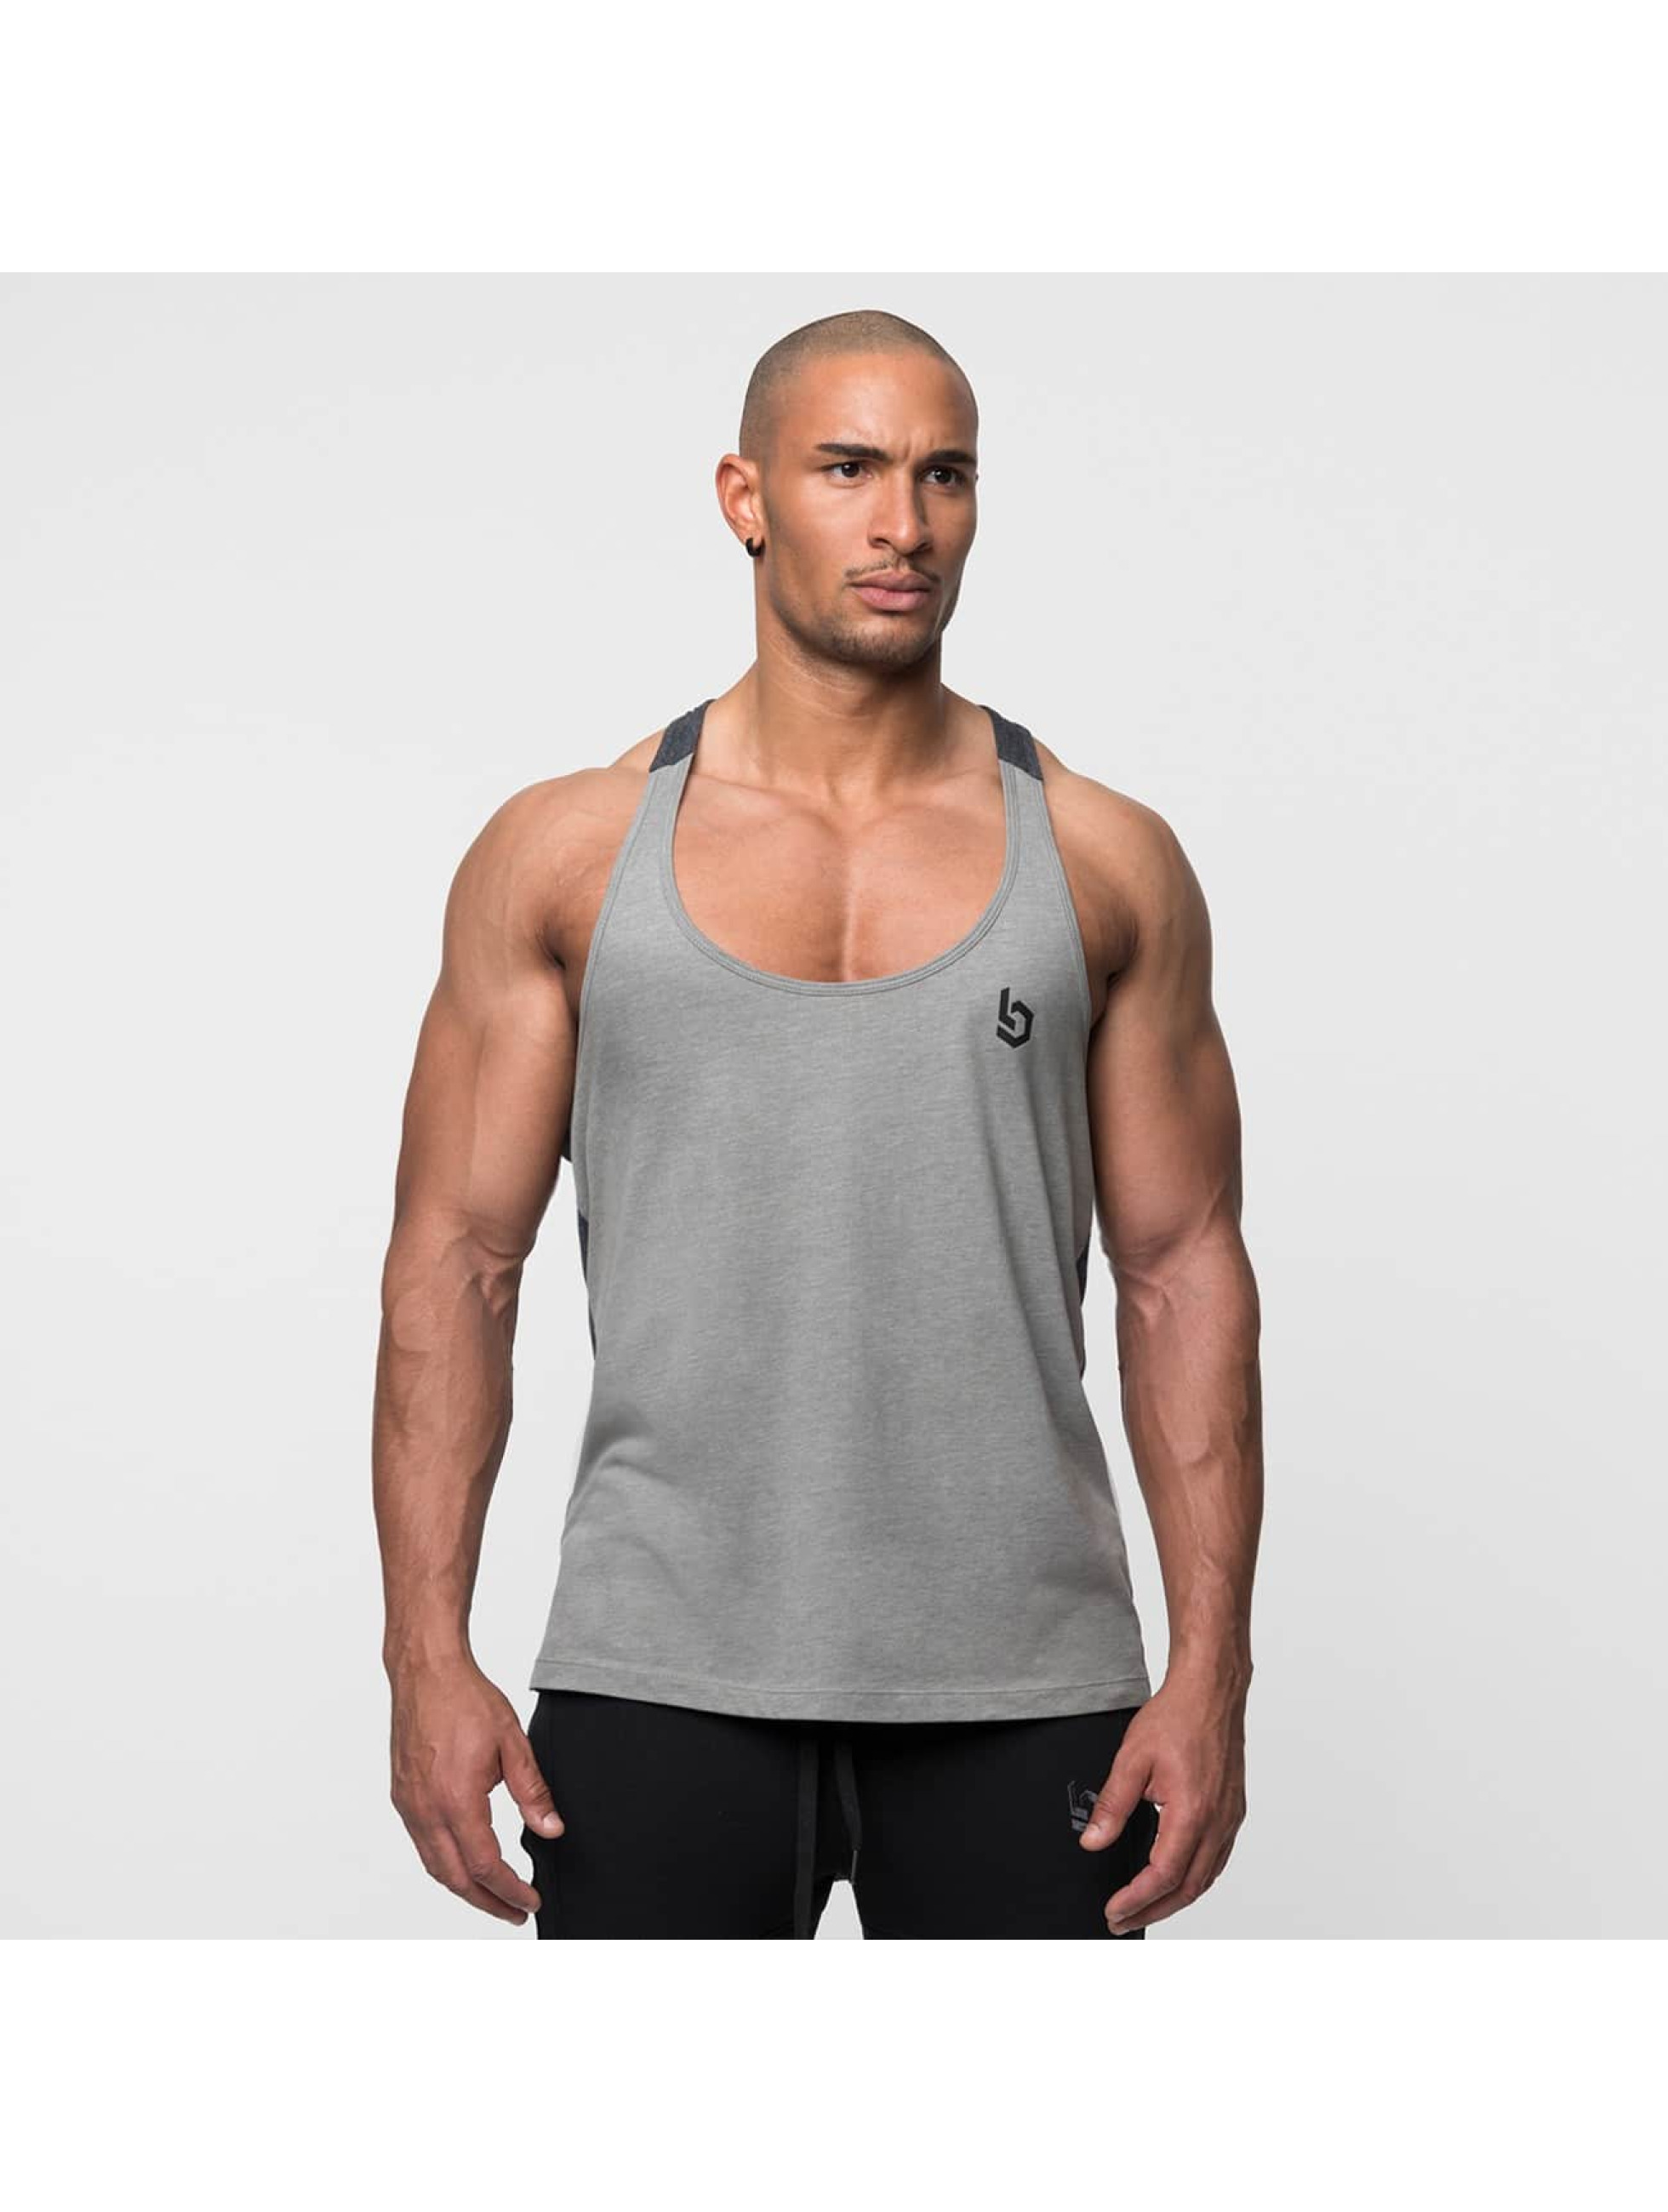 Beyond Limits Tank Tops Selected Stringer gris